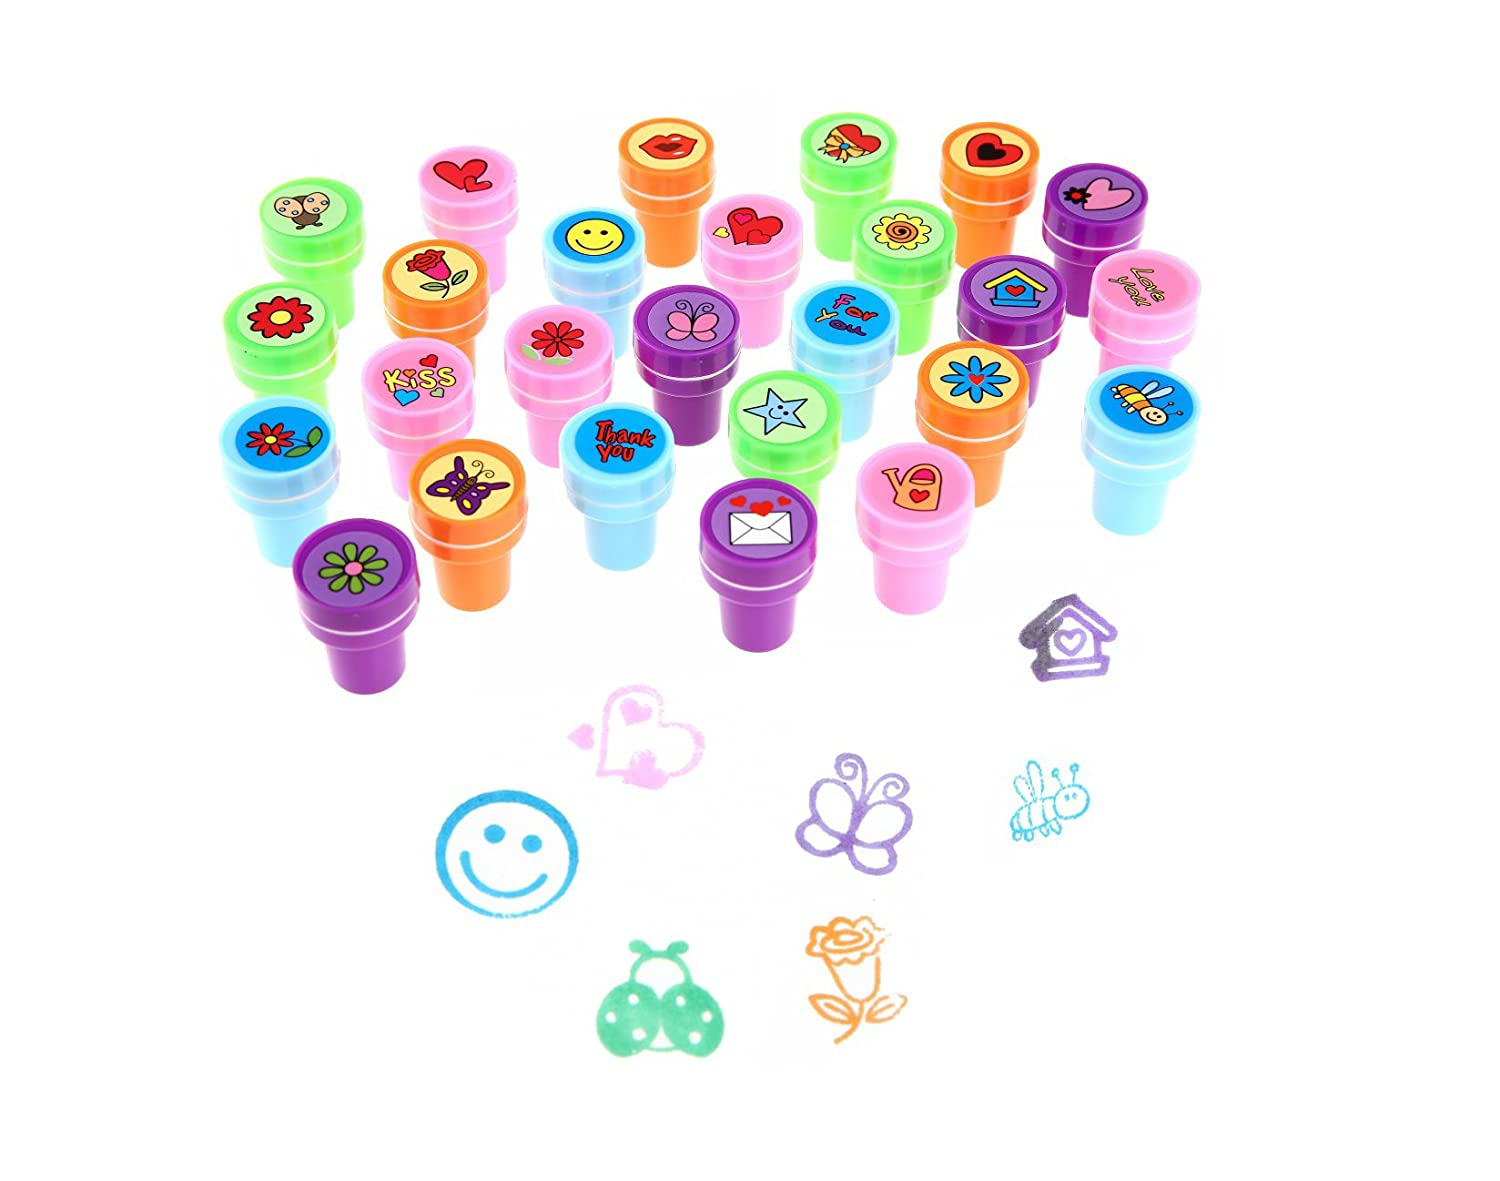 LUCKYBIRD Stamps for Kids Best Sell Self Inking Stamps Heart Toy Stamp Kids Stamp Set Funny Plastic Stamps 26 Count